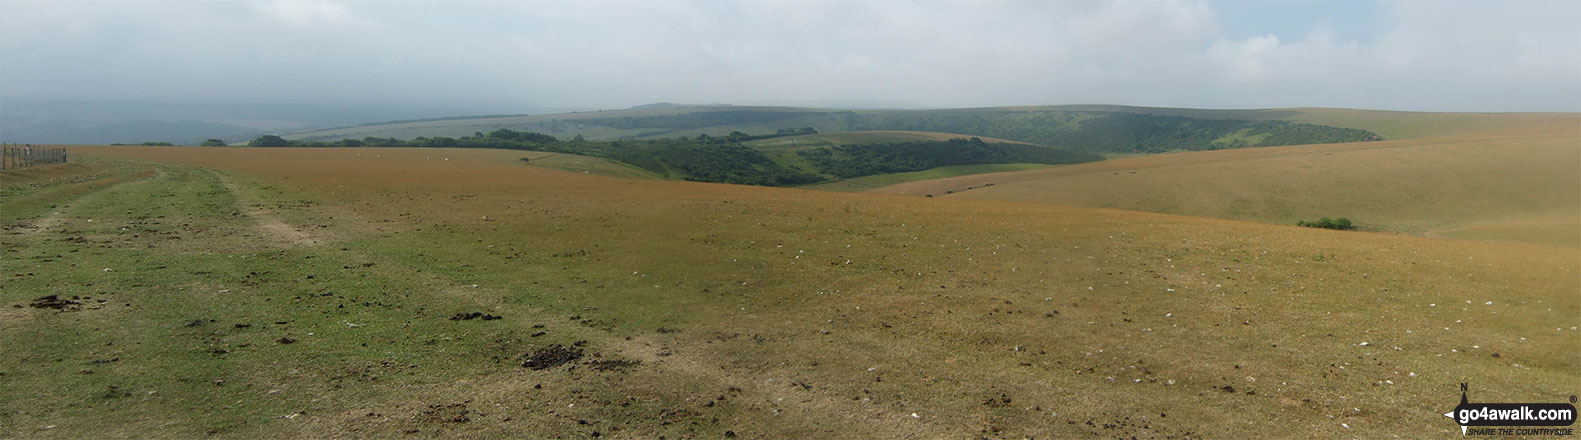 The view from Bostal Hill